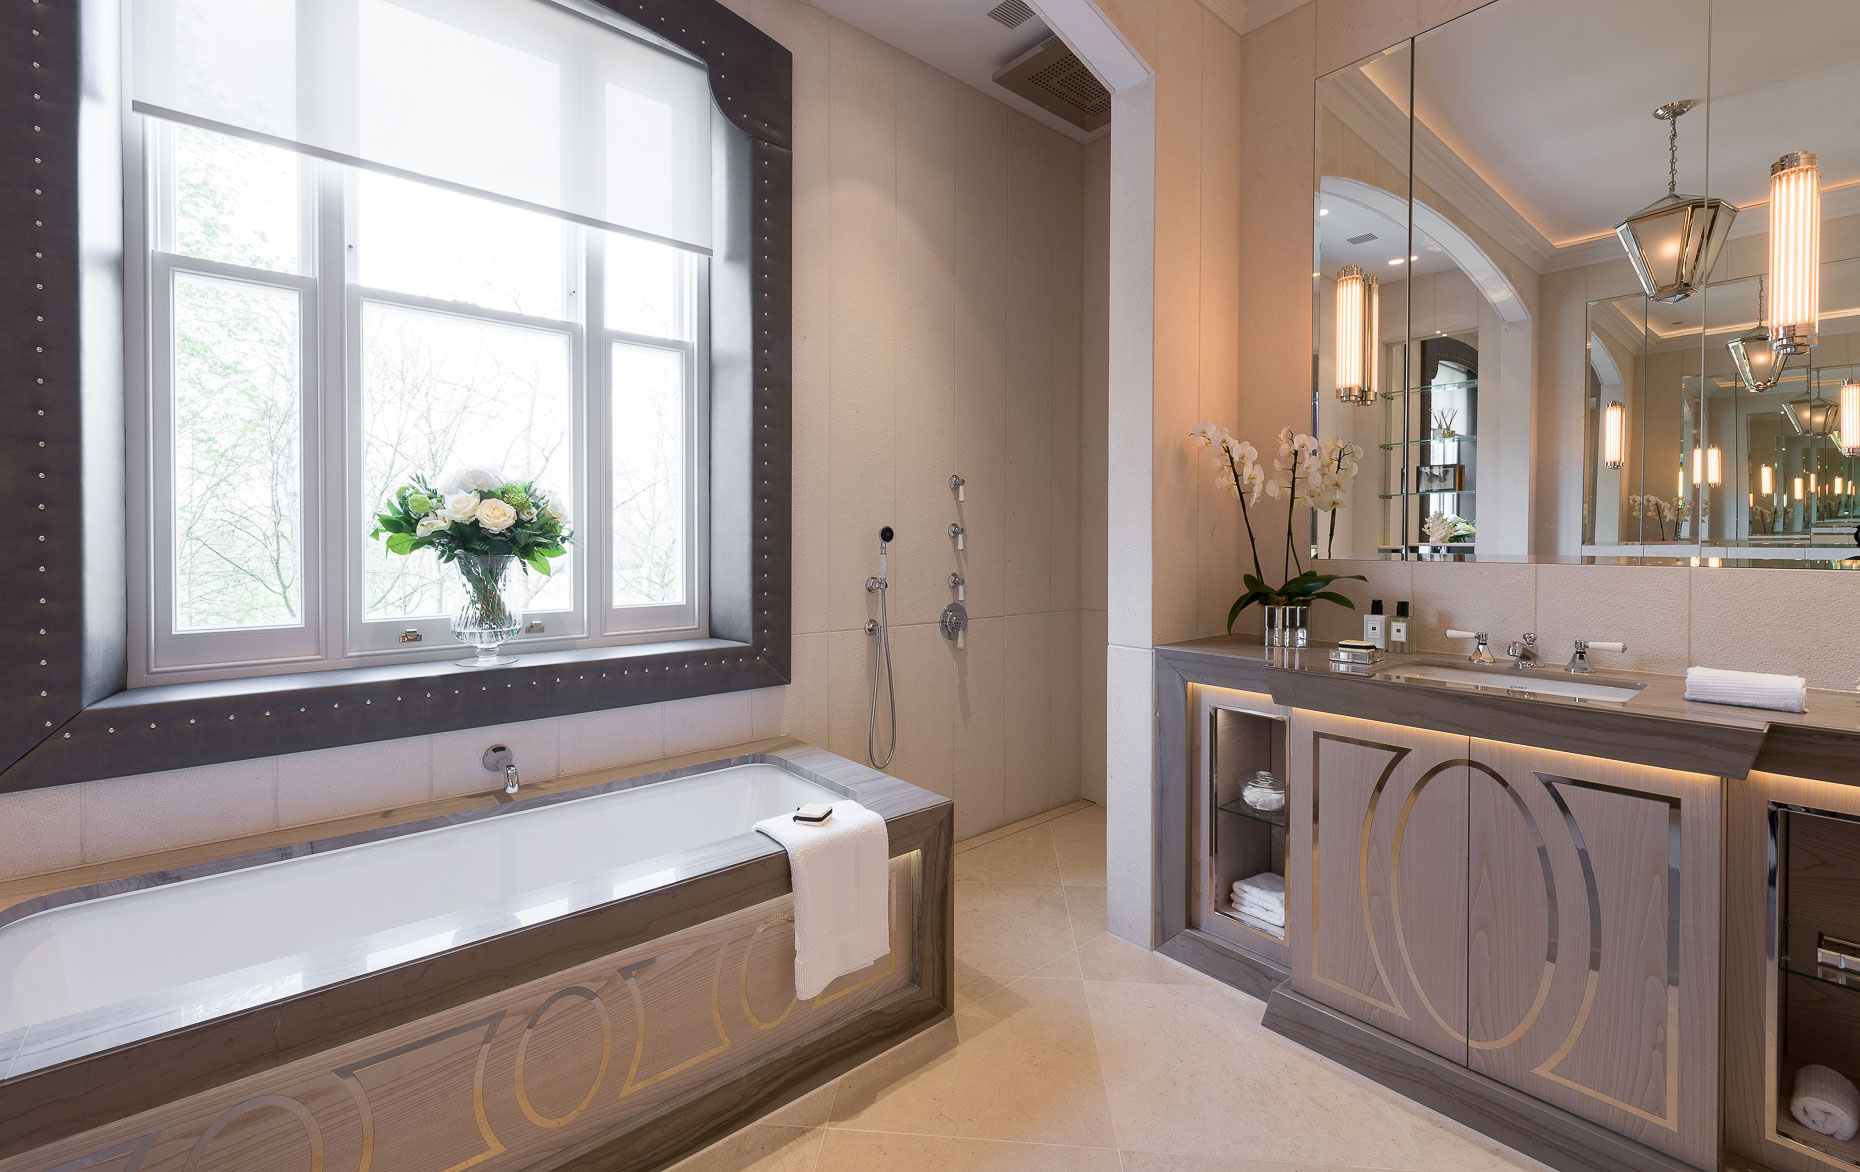 phillimore-gardens-bathroom-interior-photographer-kensington-london-property-13